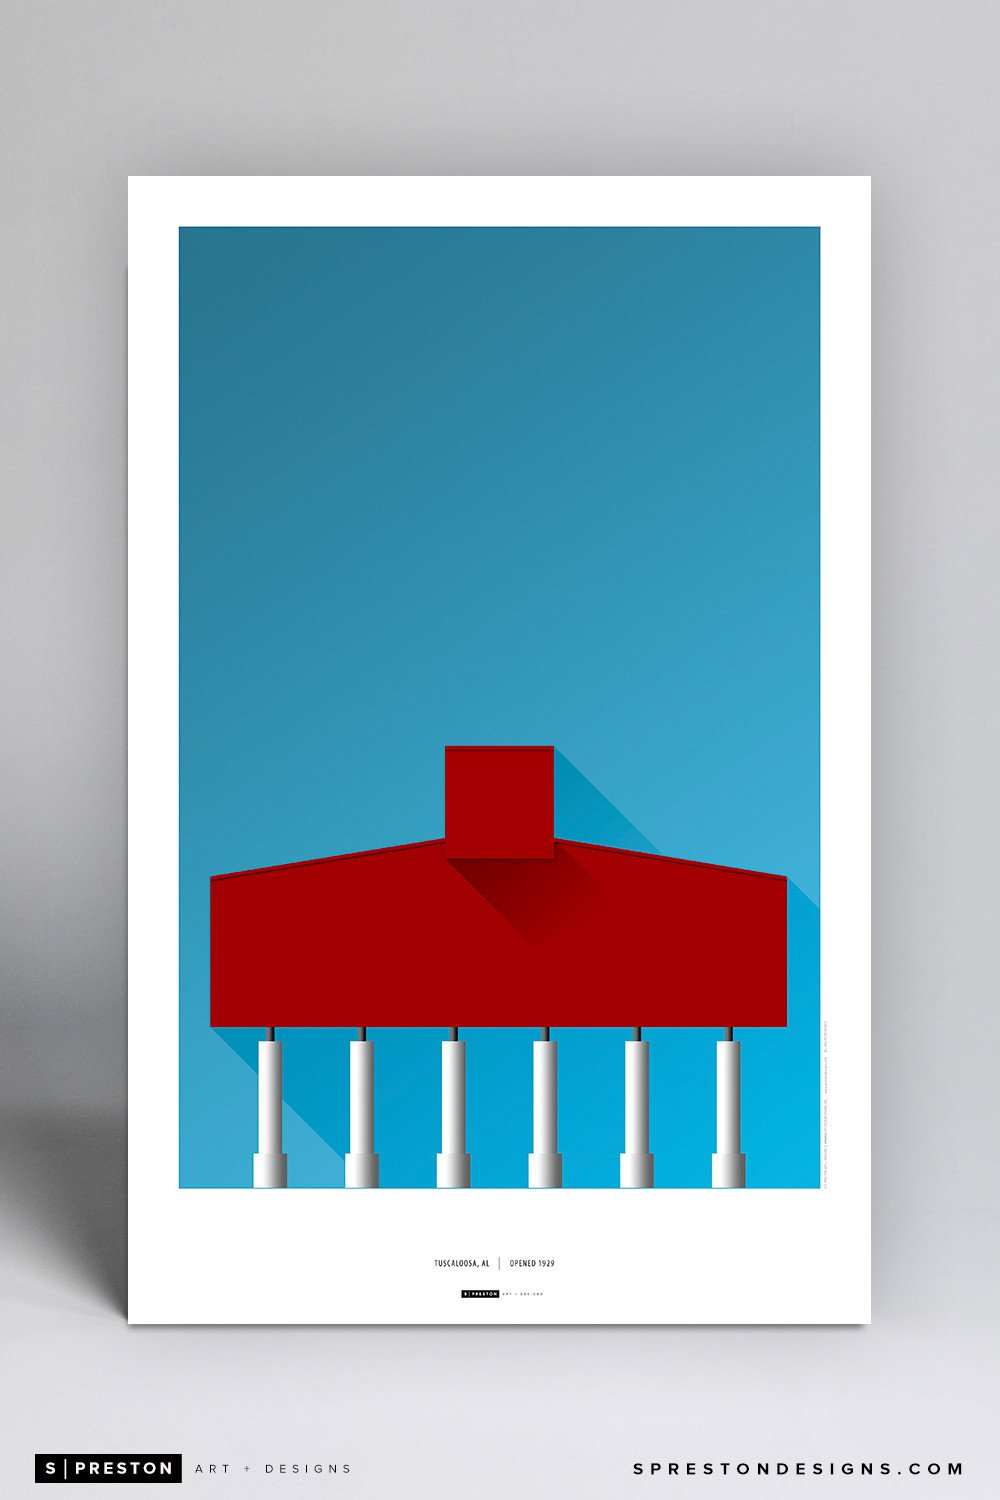 Minimalist Bryant-Denny Stadium Poster Print - University of Alabama - S. Preston Art + Designs